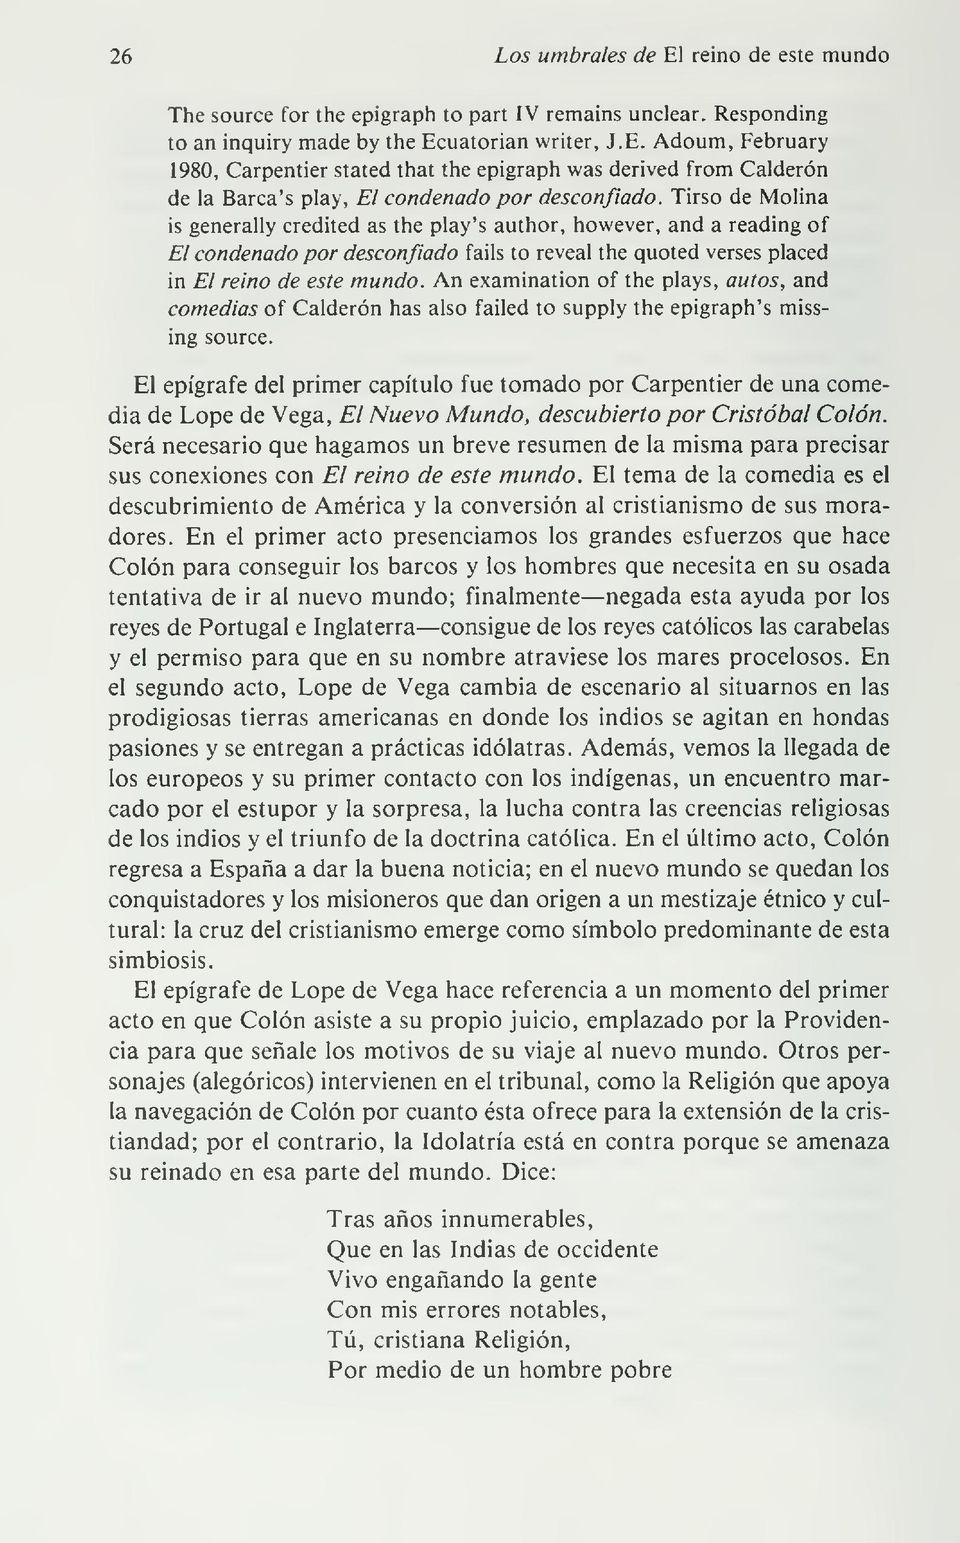 An examination of the plays, autos, and comedias of Calderón has also failed to supply the epigraph's missing source.